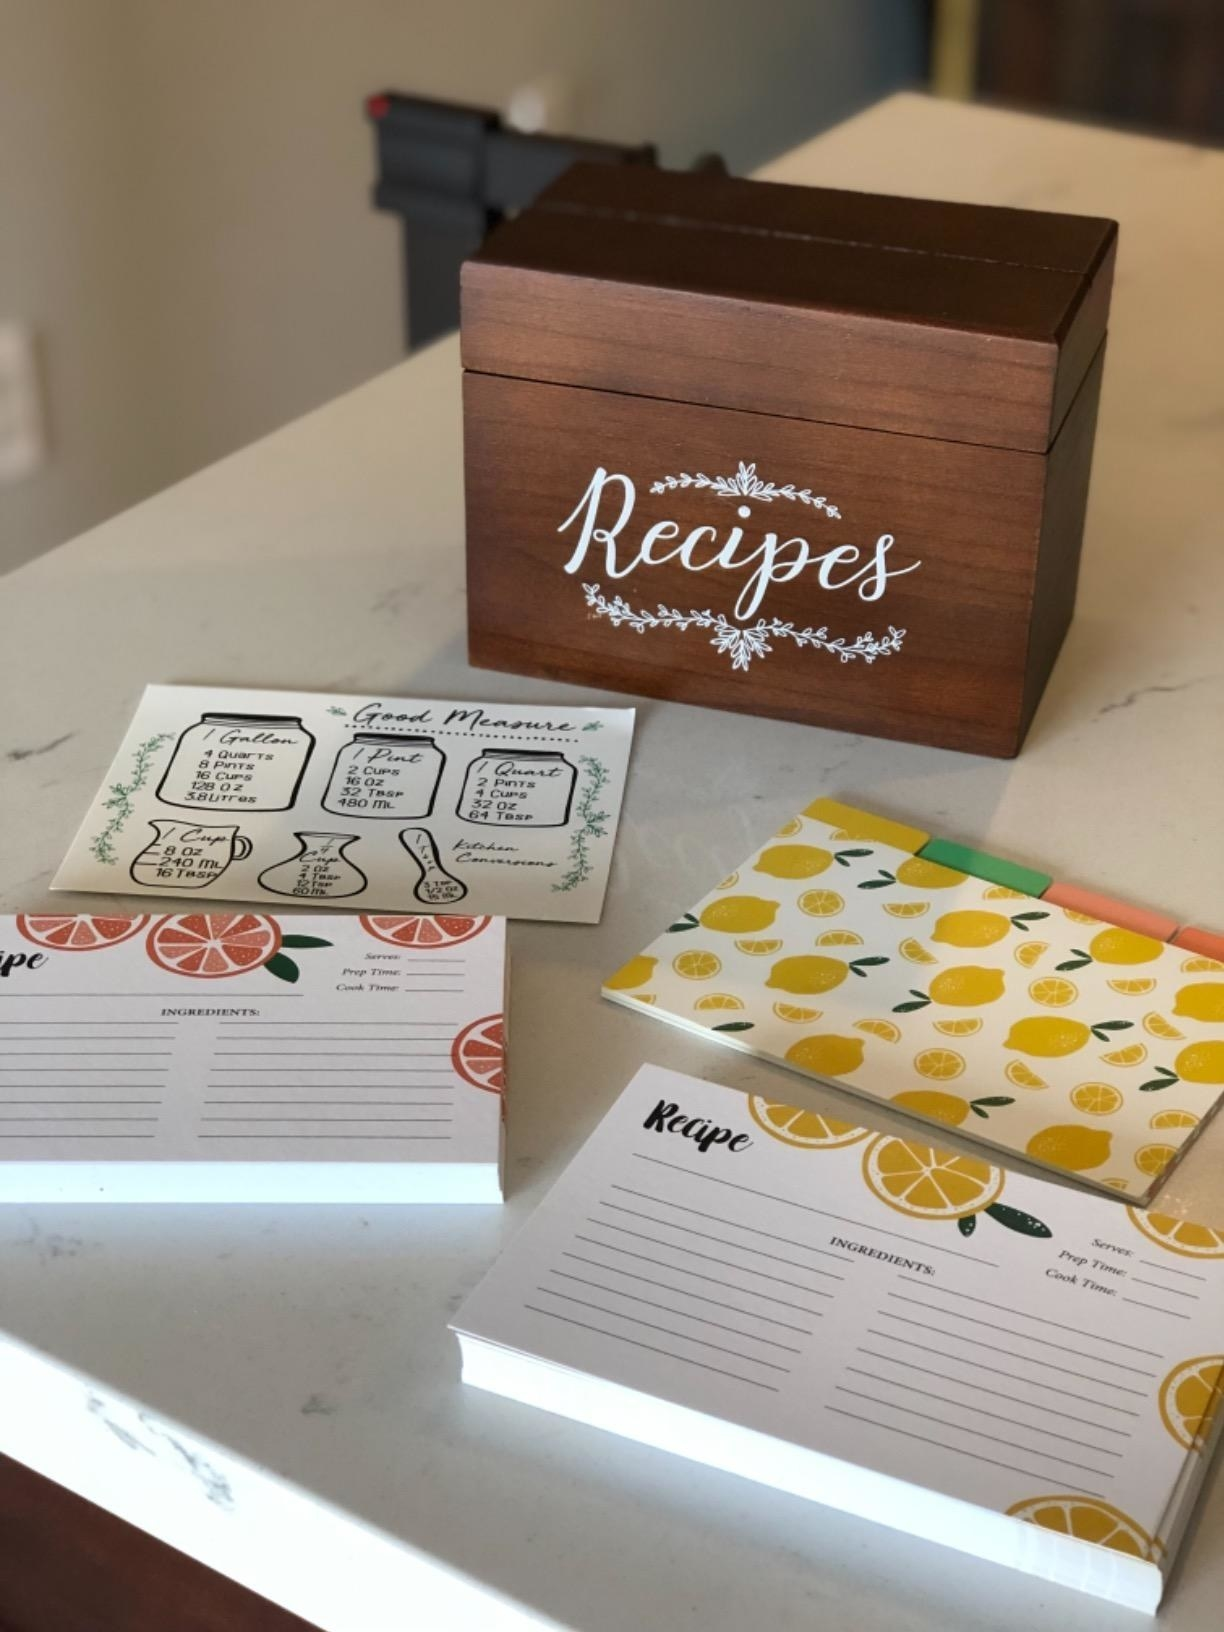 reviewer image of vintage recipe box and index cards